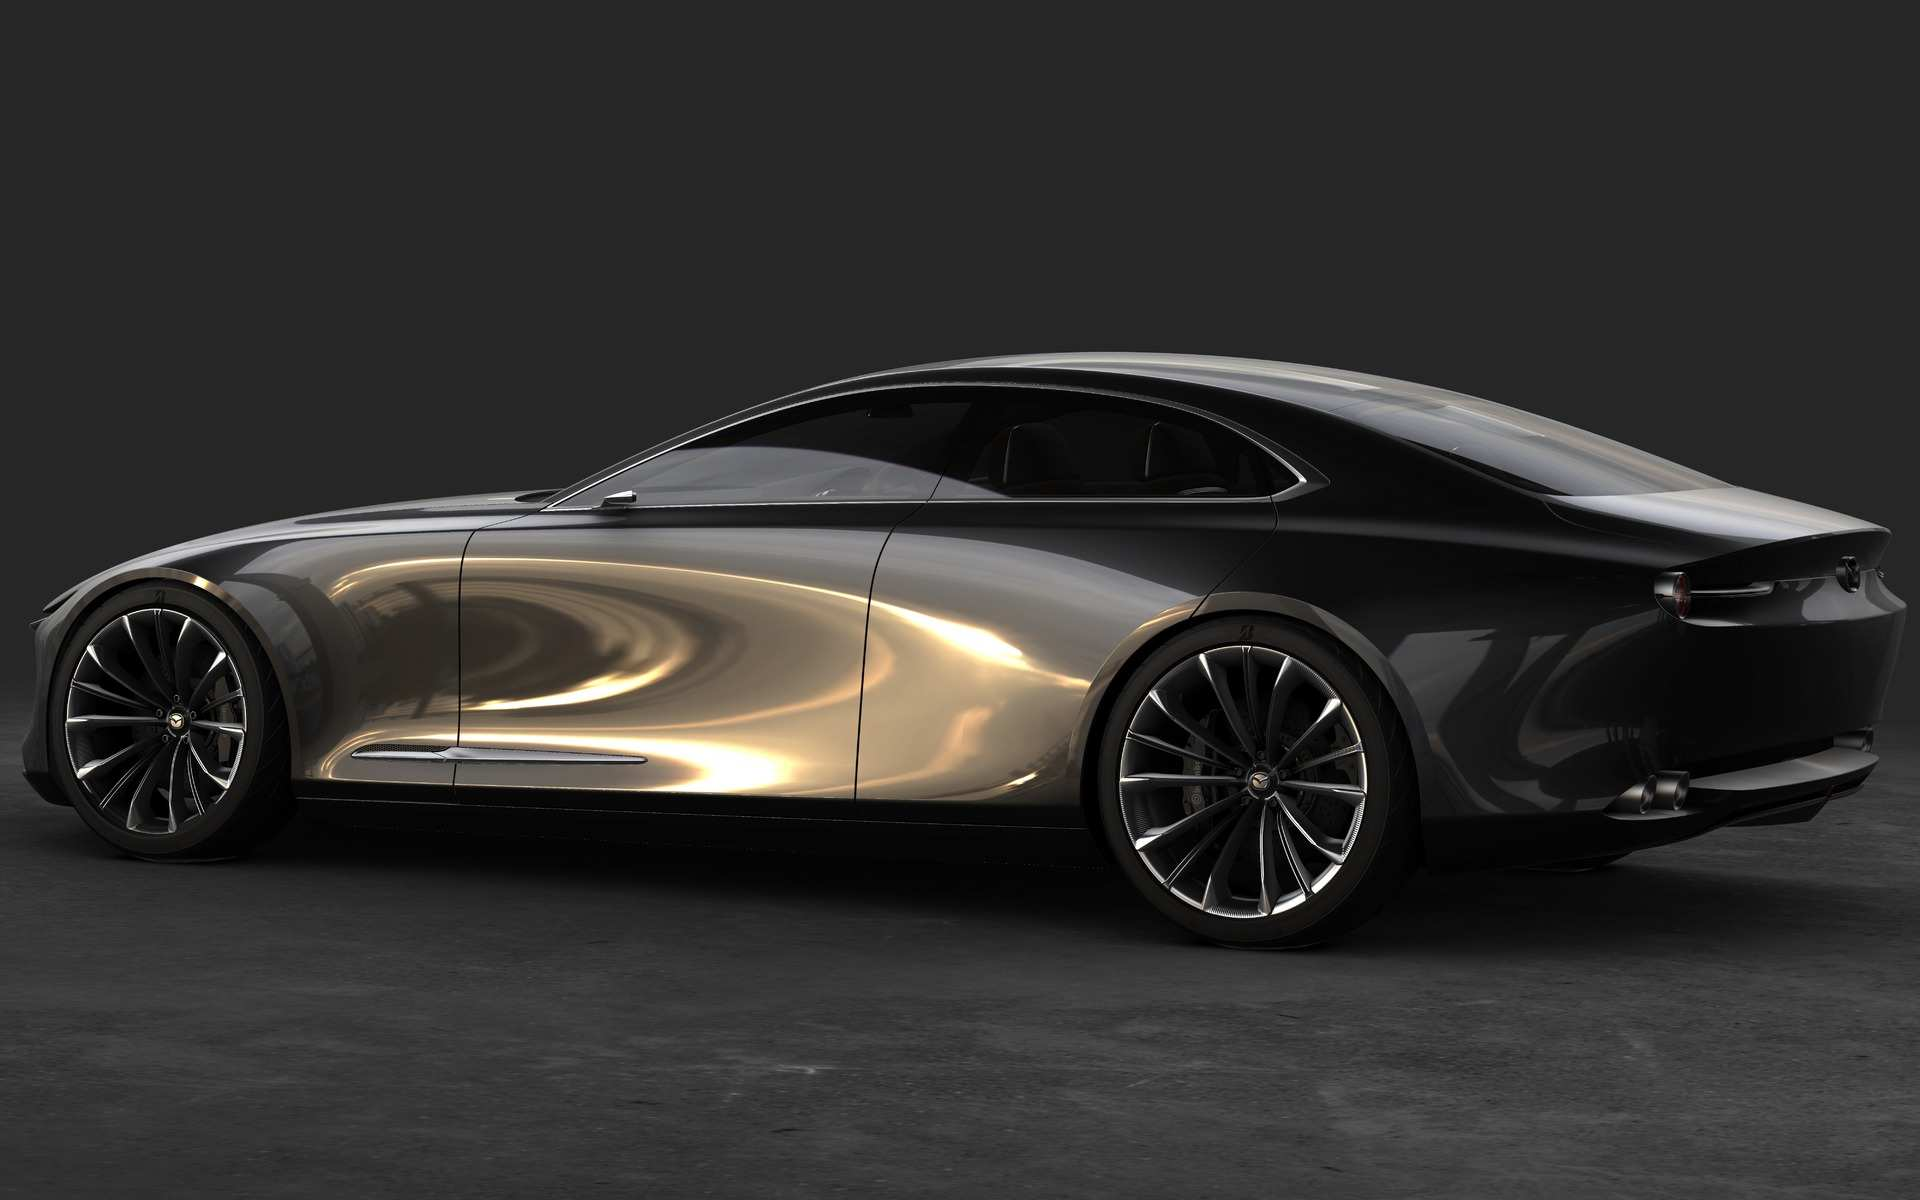 98 New Mazda 6 Vision Coupe 2020 Release Date